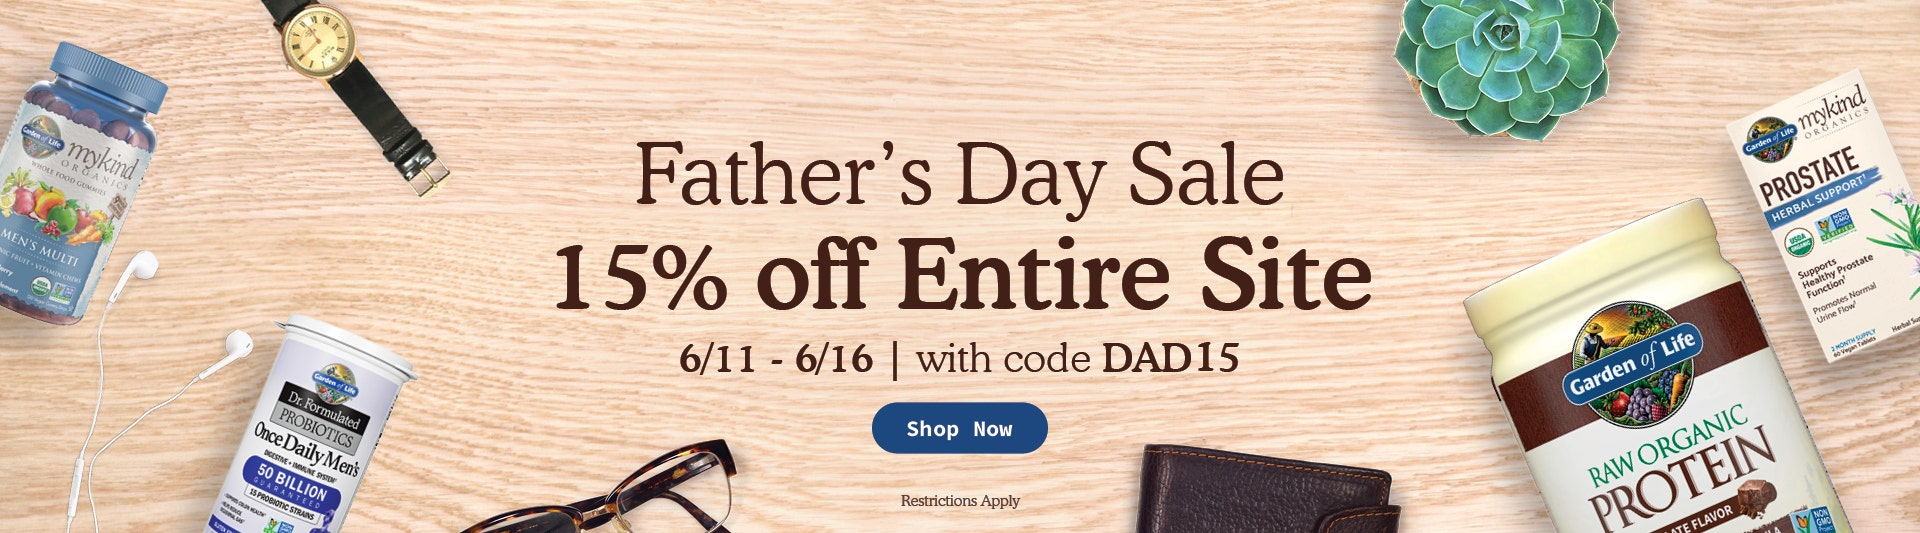 Fathers Day Sale 15% off Entire Site